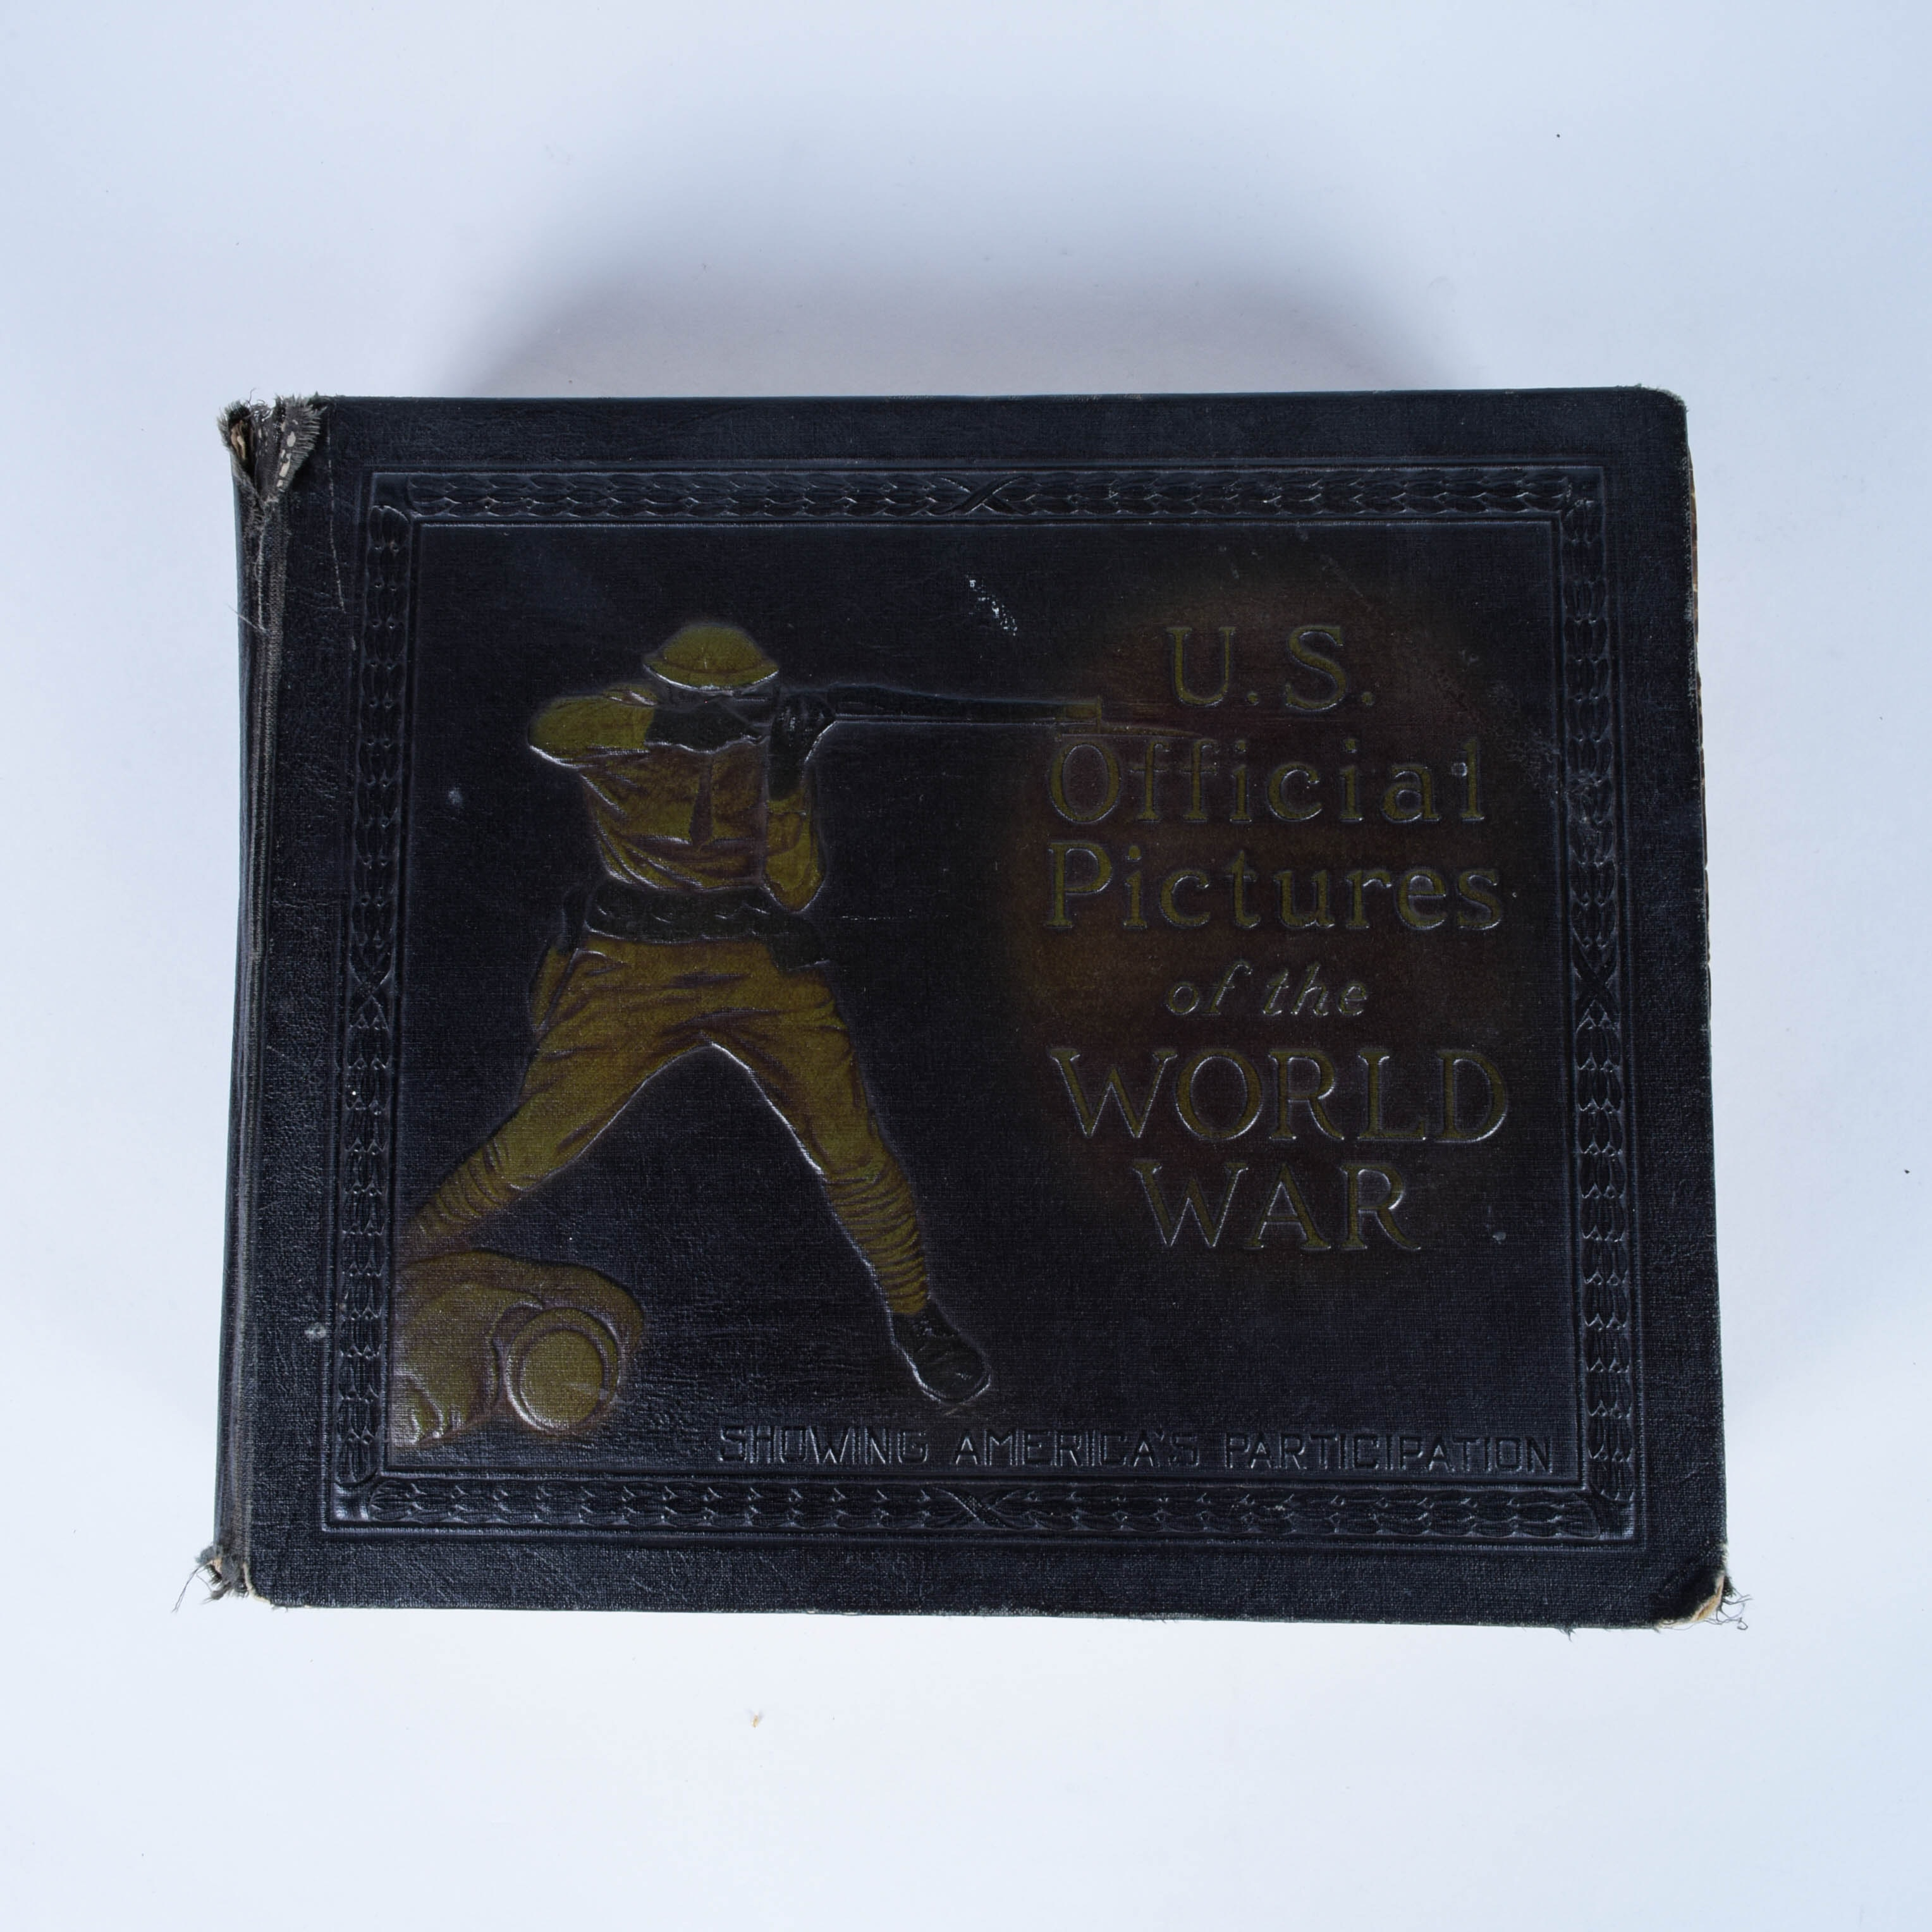 World War I Pictorial History Book